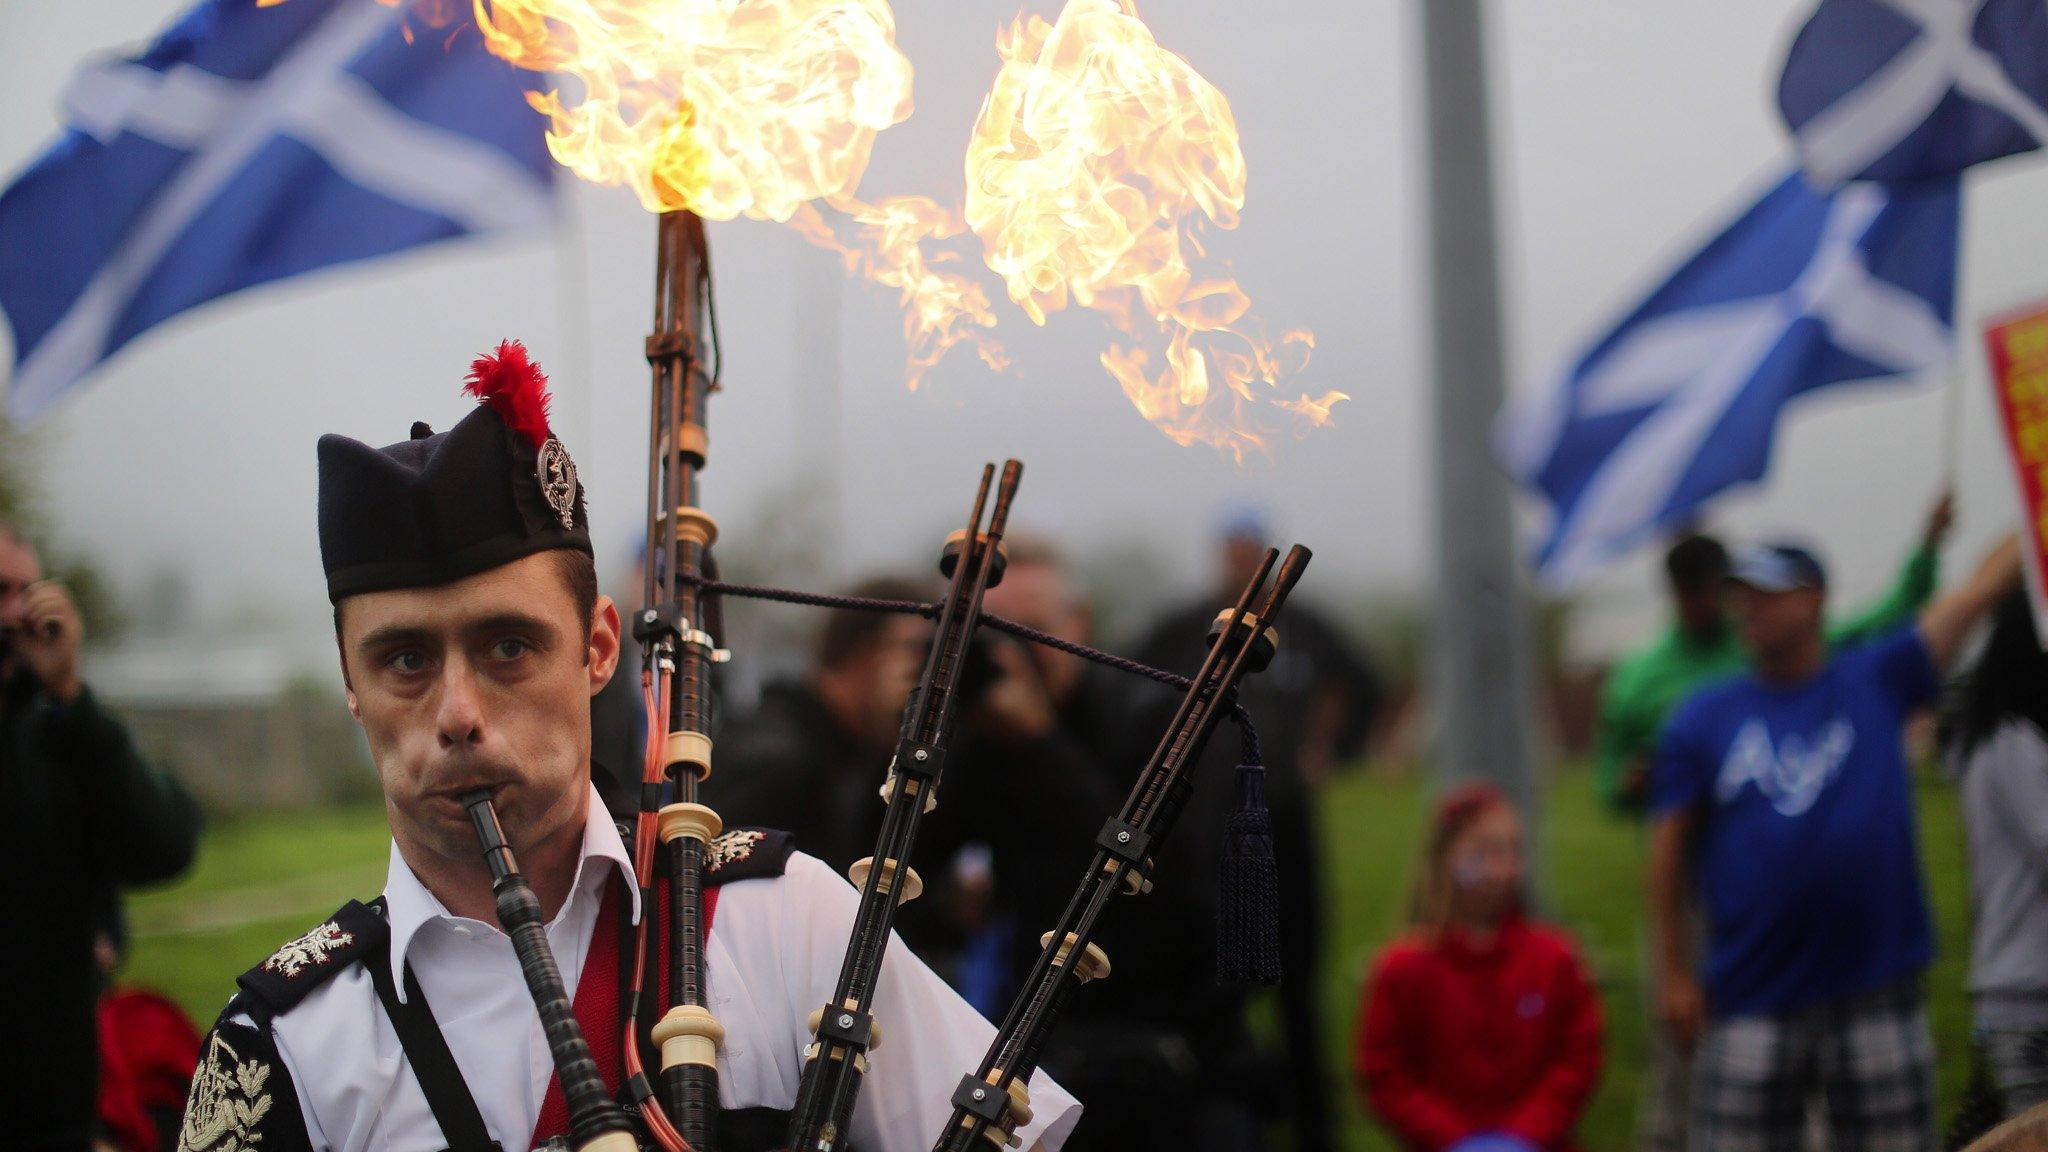 Scotland's referendum fight turns to peaceful celebrations